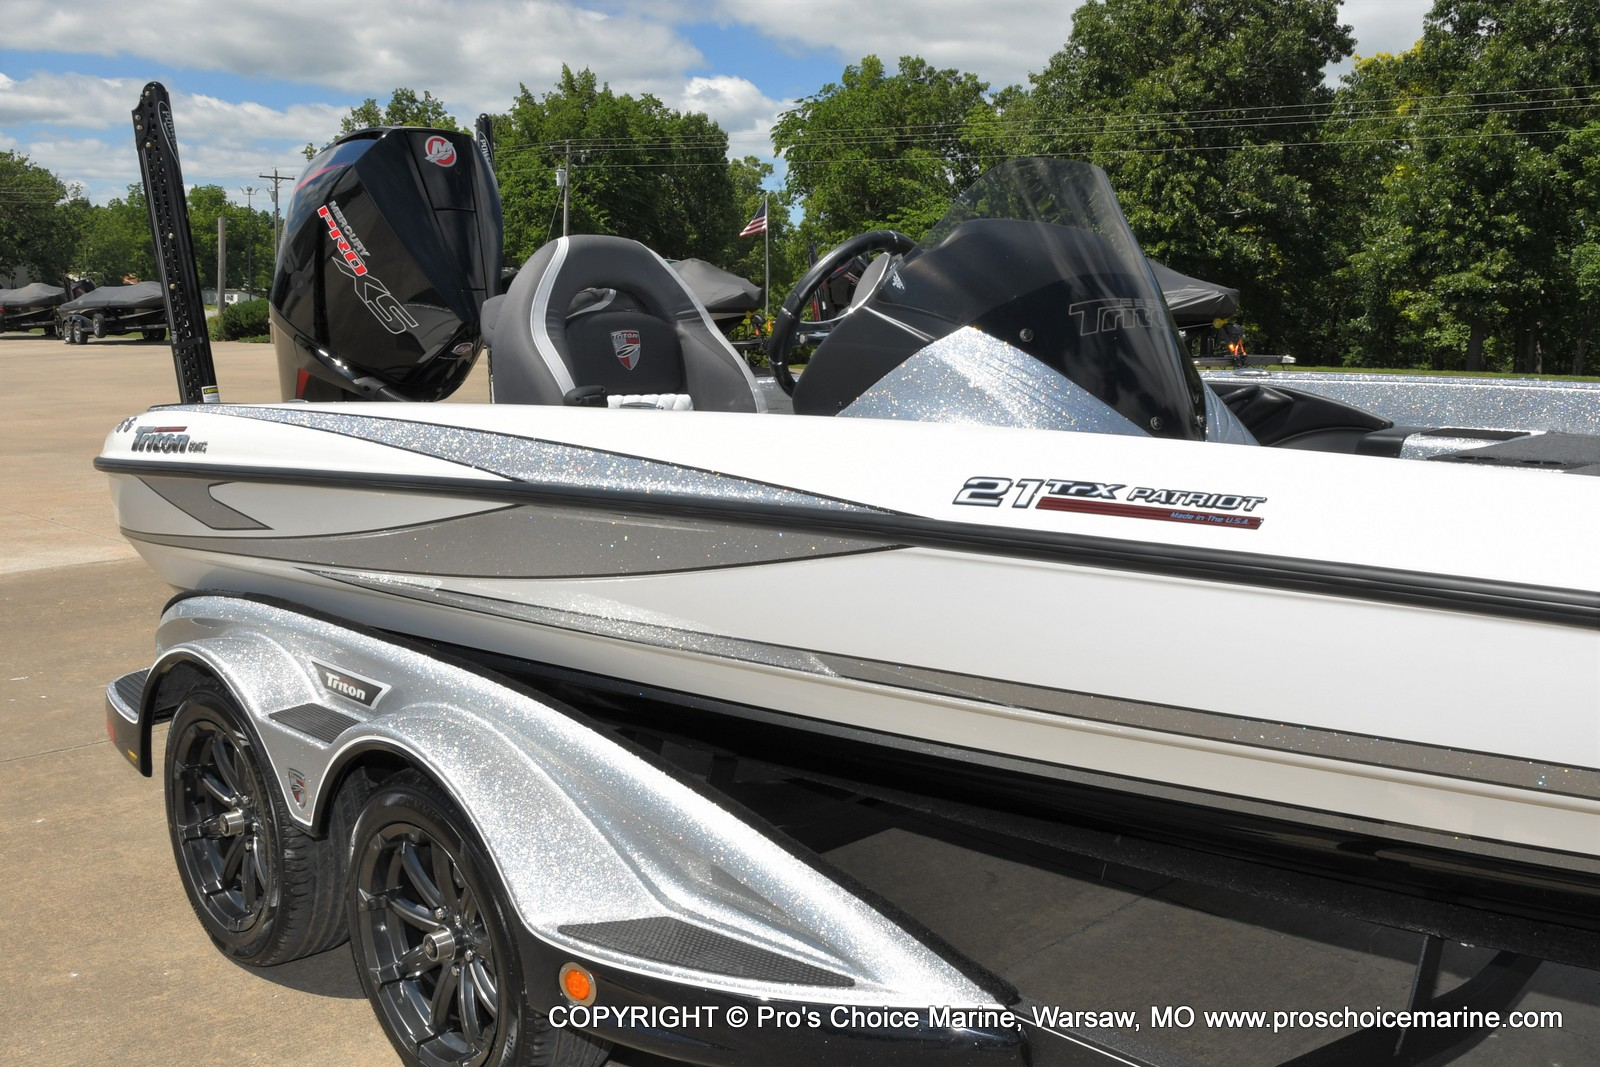 2021 Triton boat for sale, model of the boat is 21 TRX Patriot & Image # 28 of 50